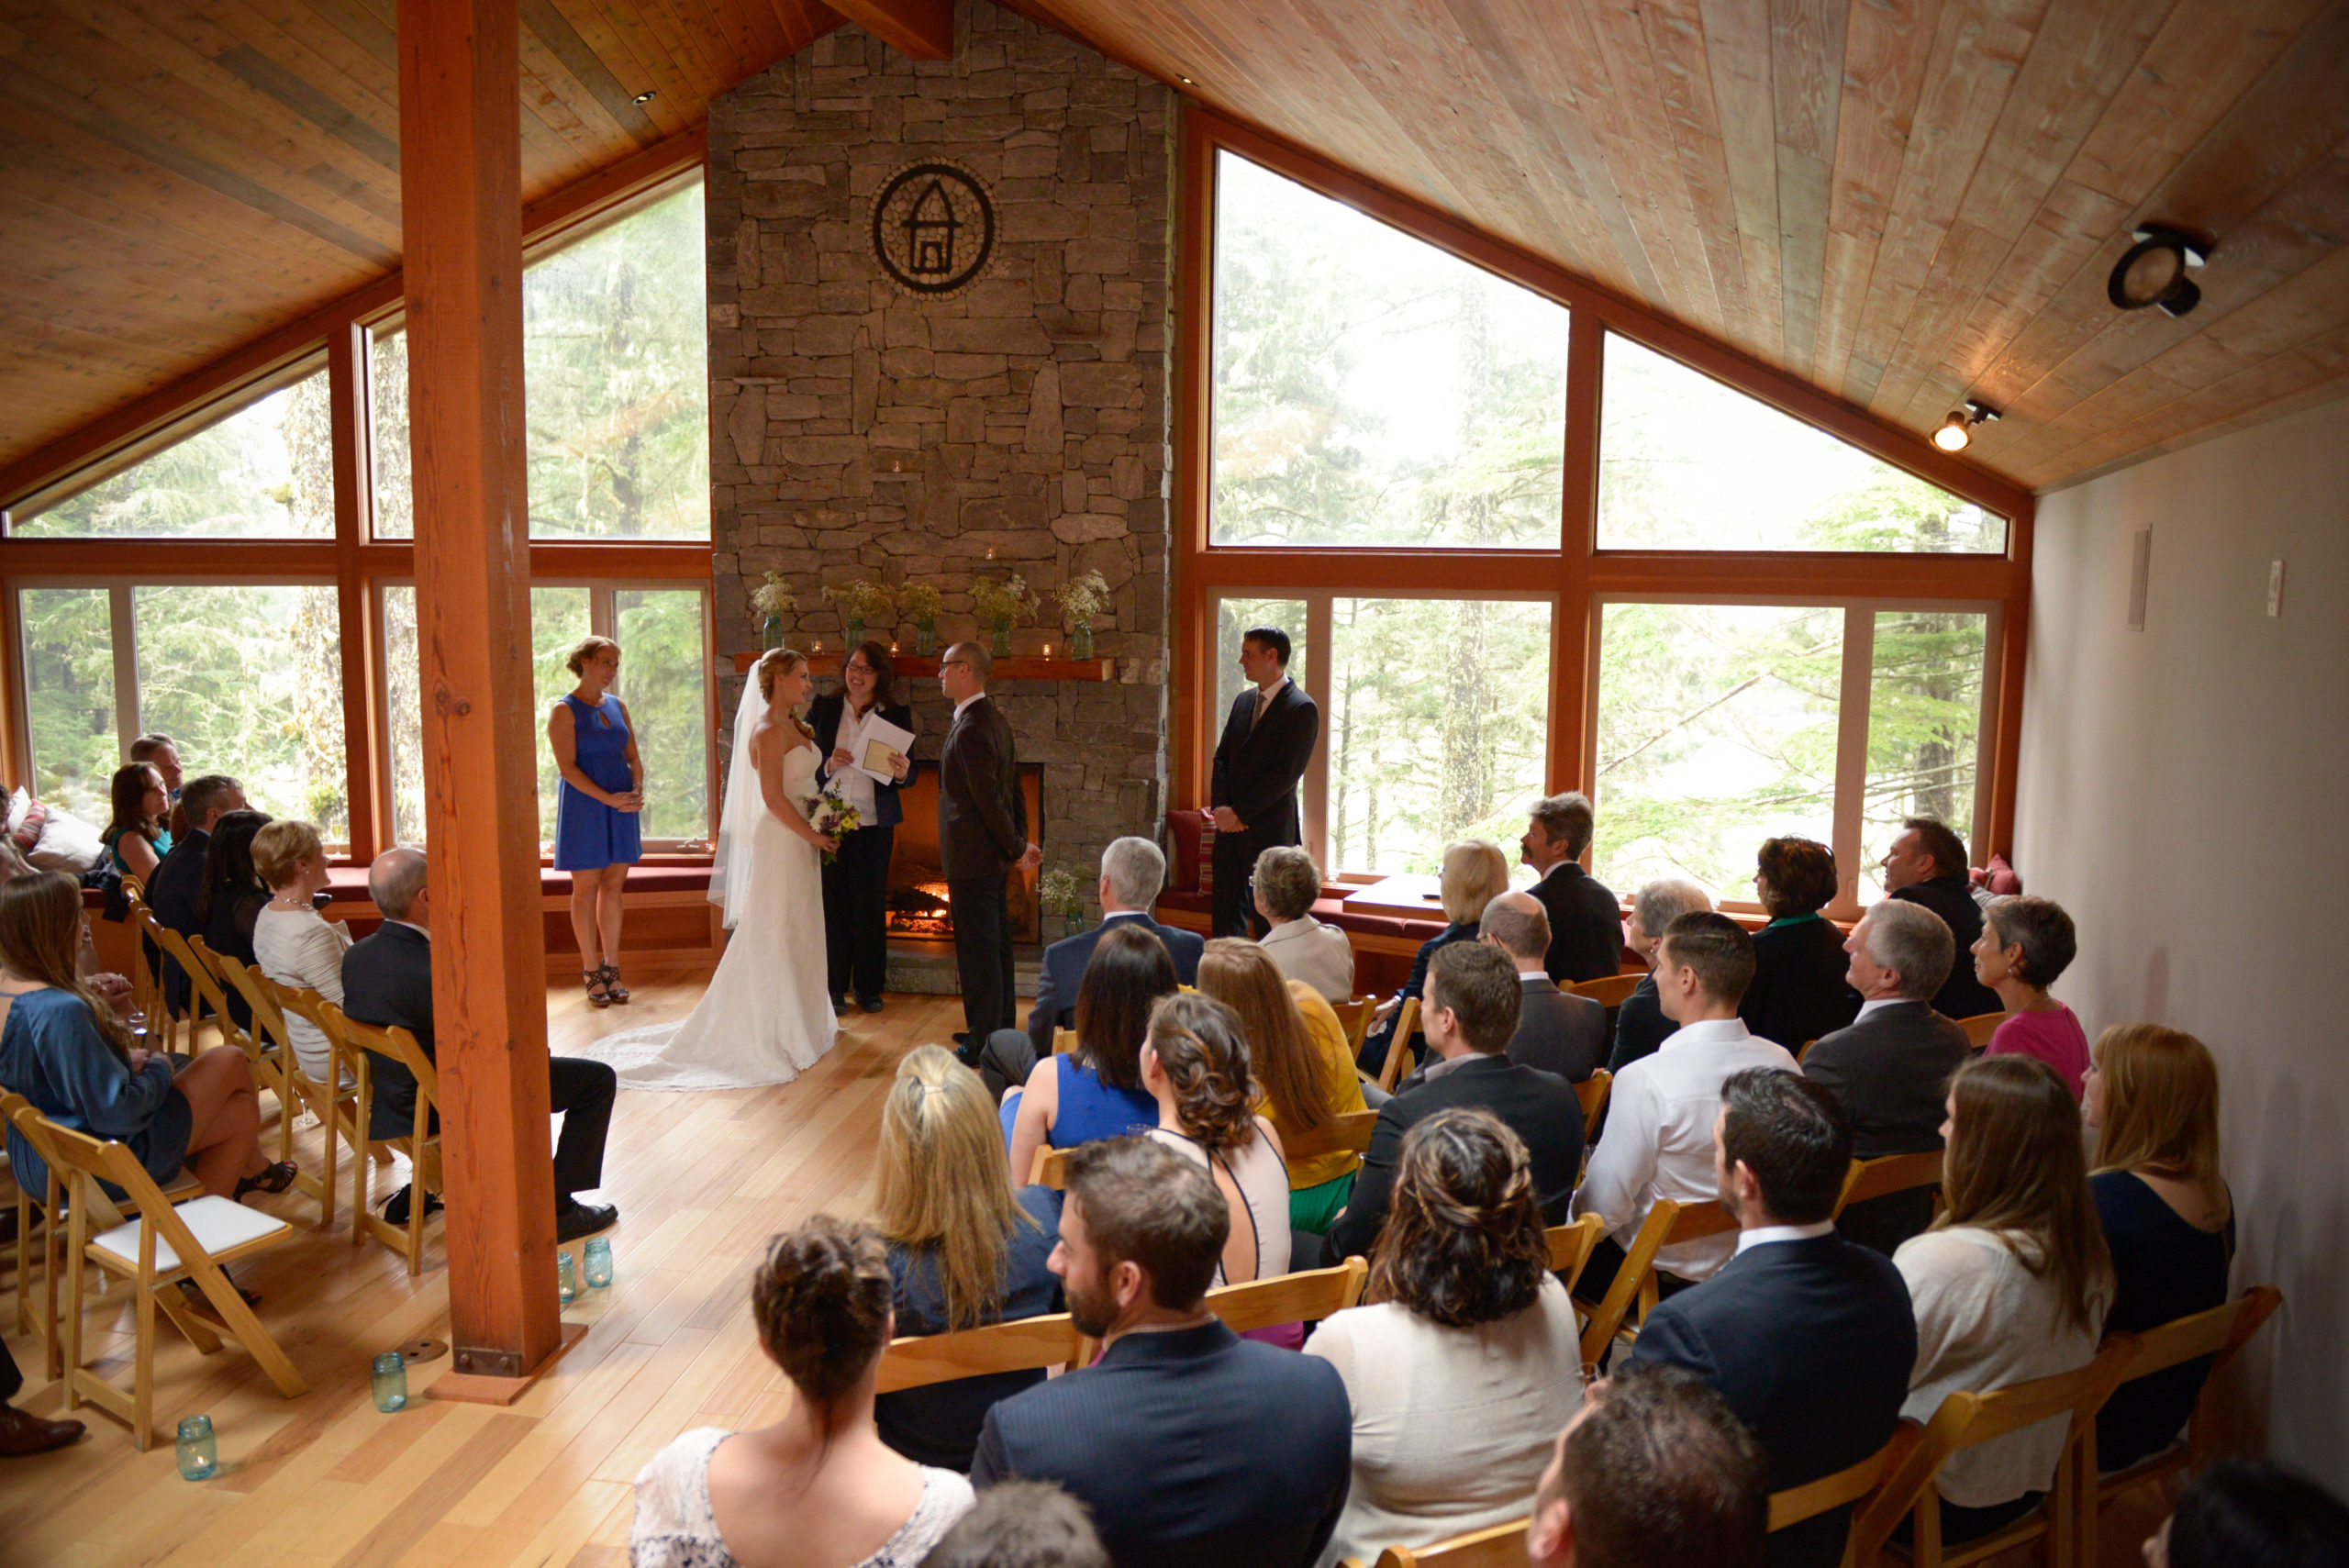 Douglas Ludwig_Wedding at The Lodge in Ucluelet